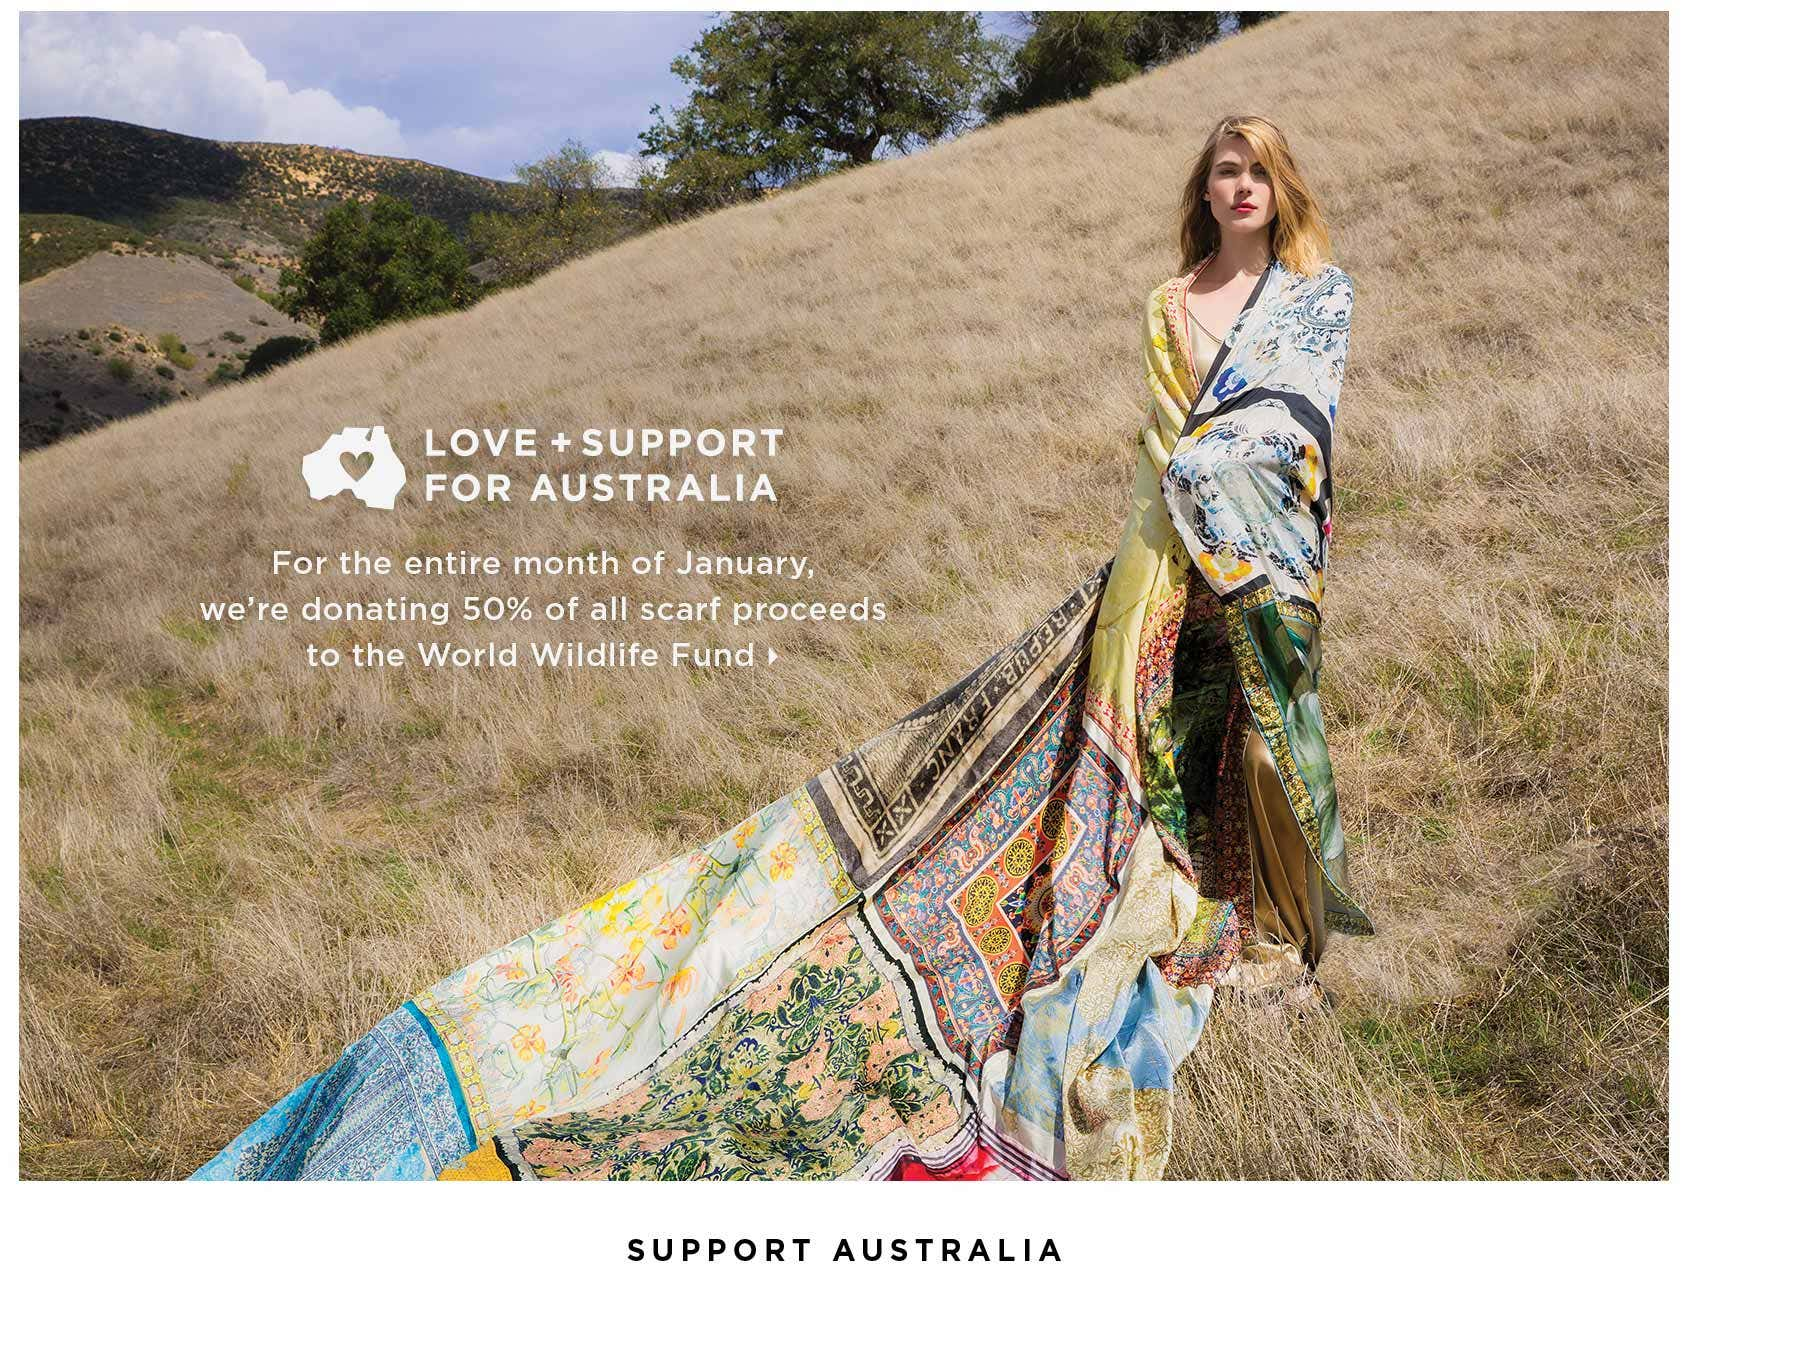 Love + Support for Australia - For the entire month of January we're donating 50% of all scarf proceeds to the World Wildlife Fund - Support Australia